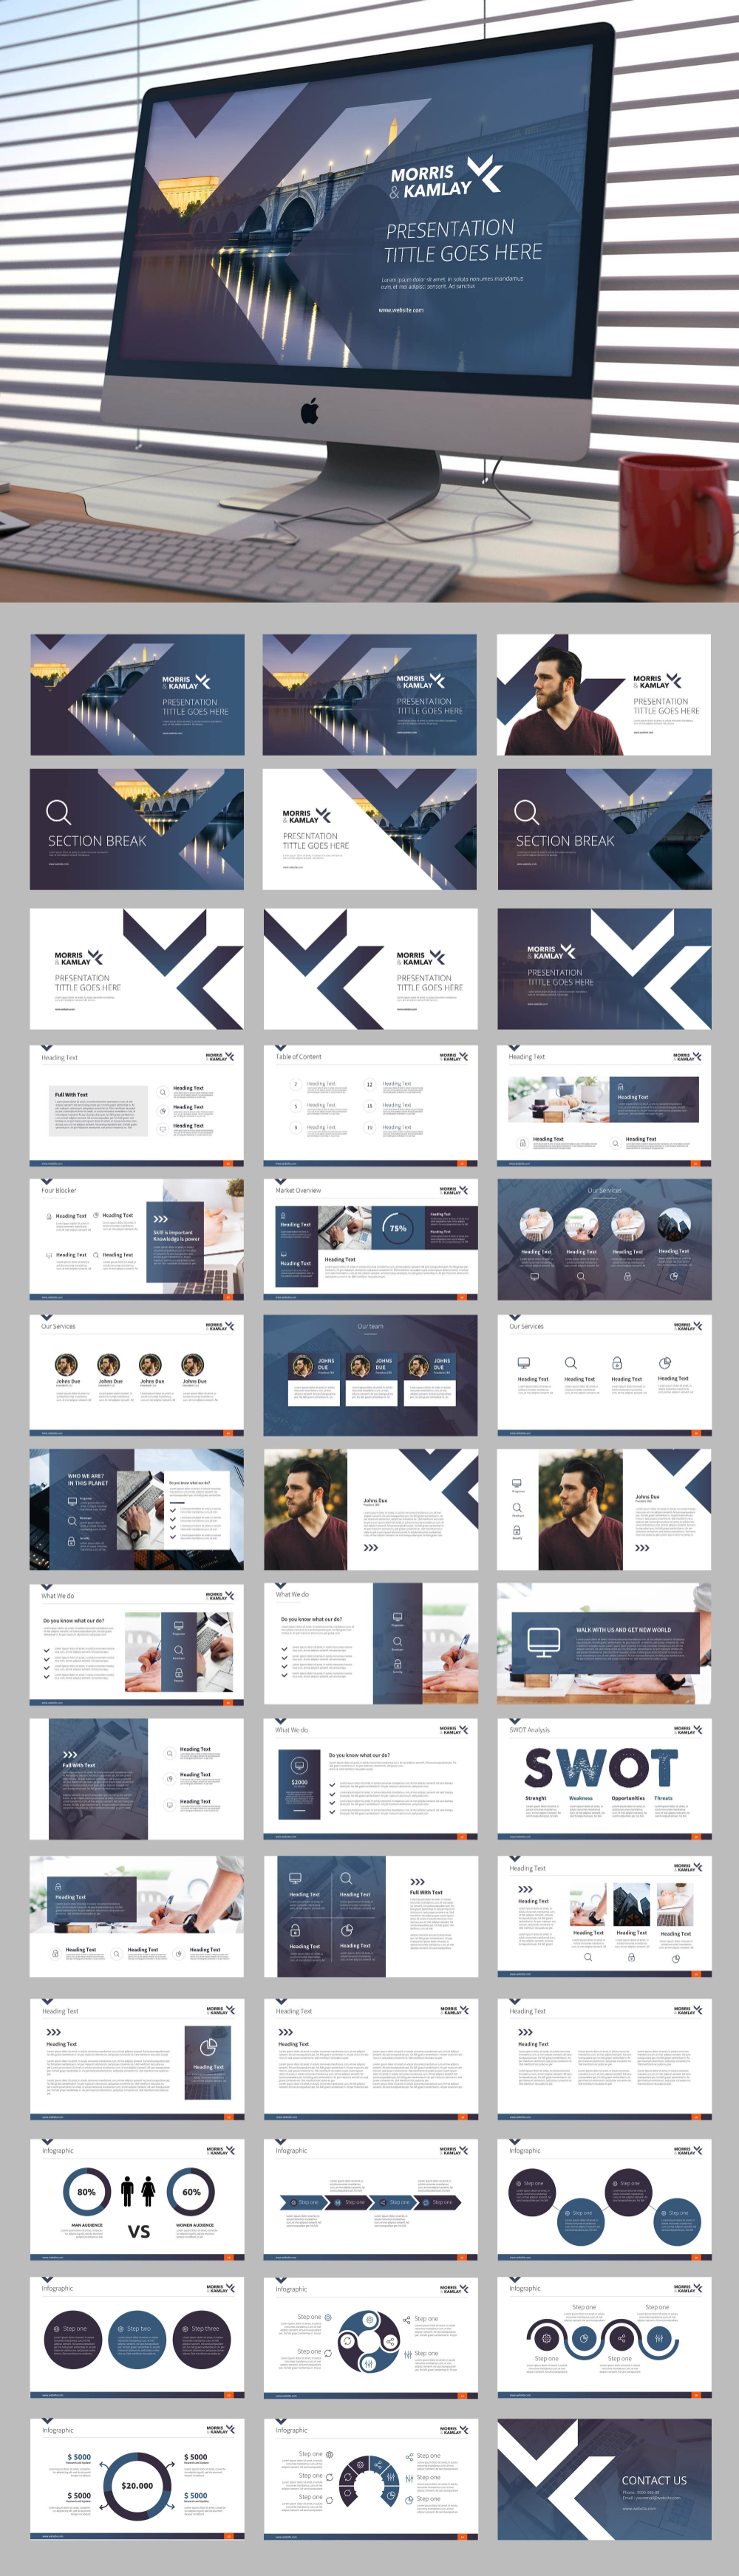 Design clean, modern template for a tech-oriented firm | PowerPoint template contest